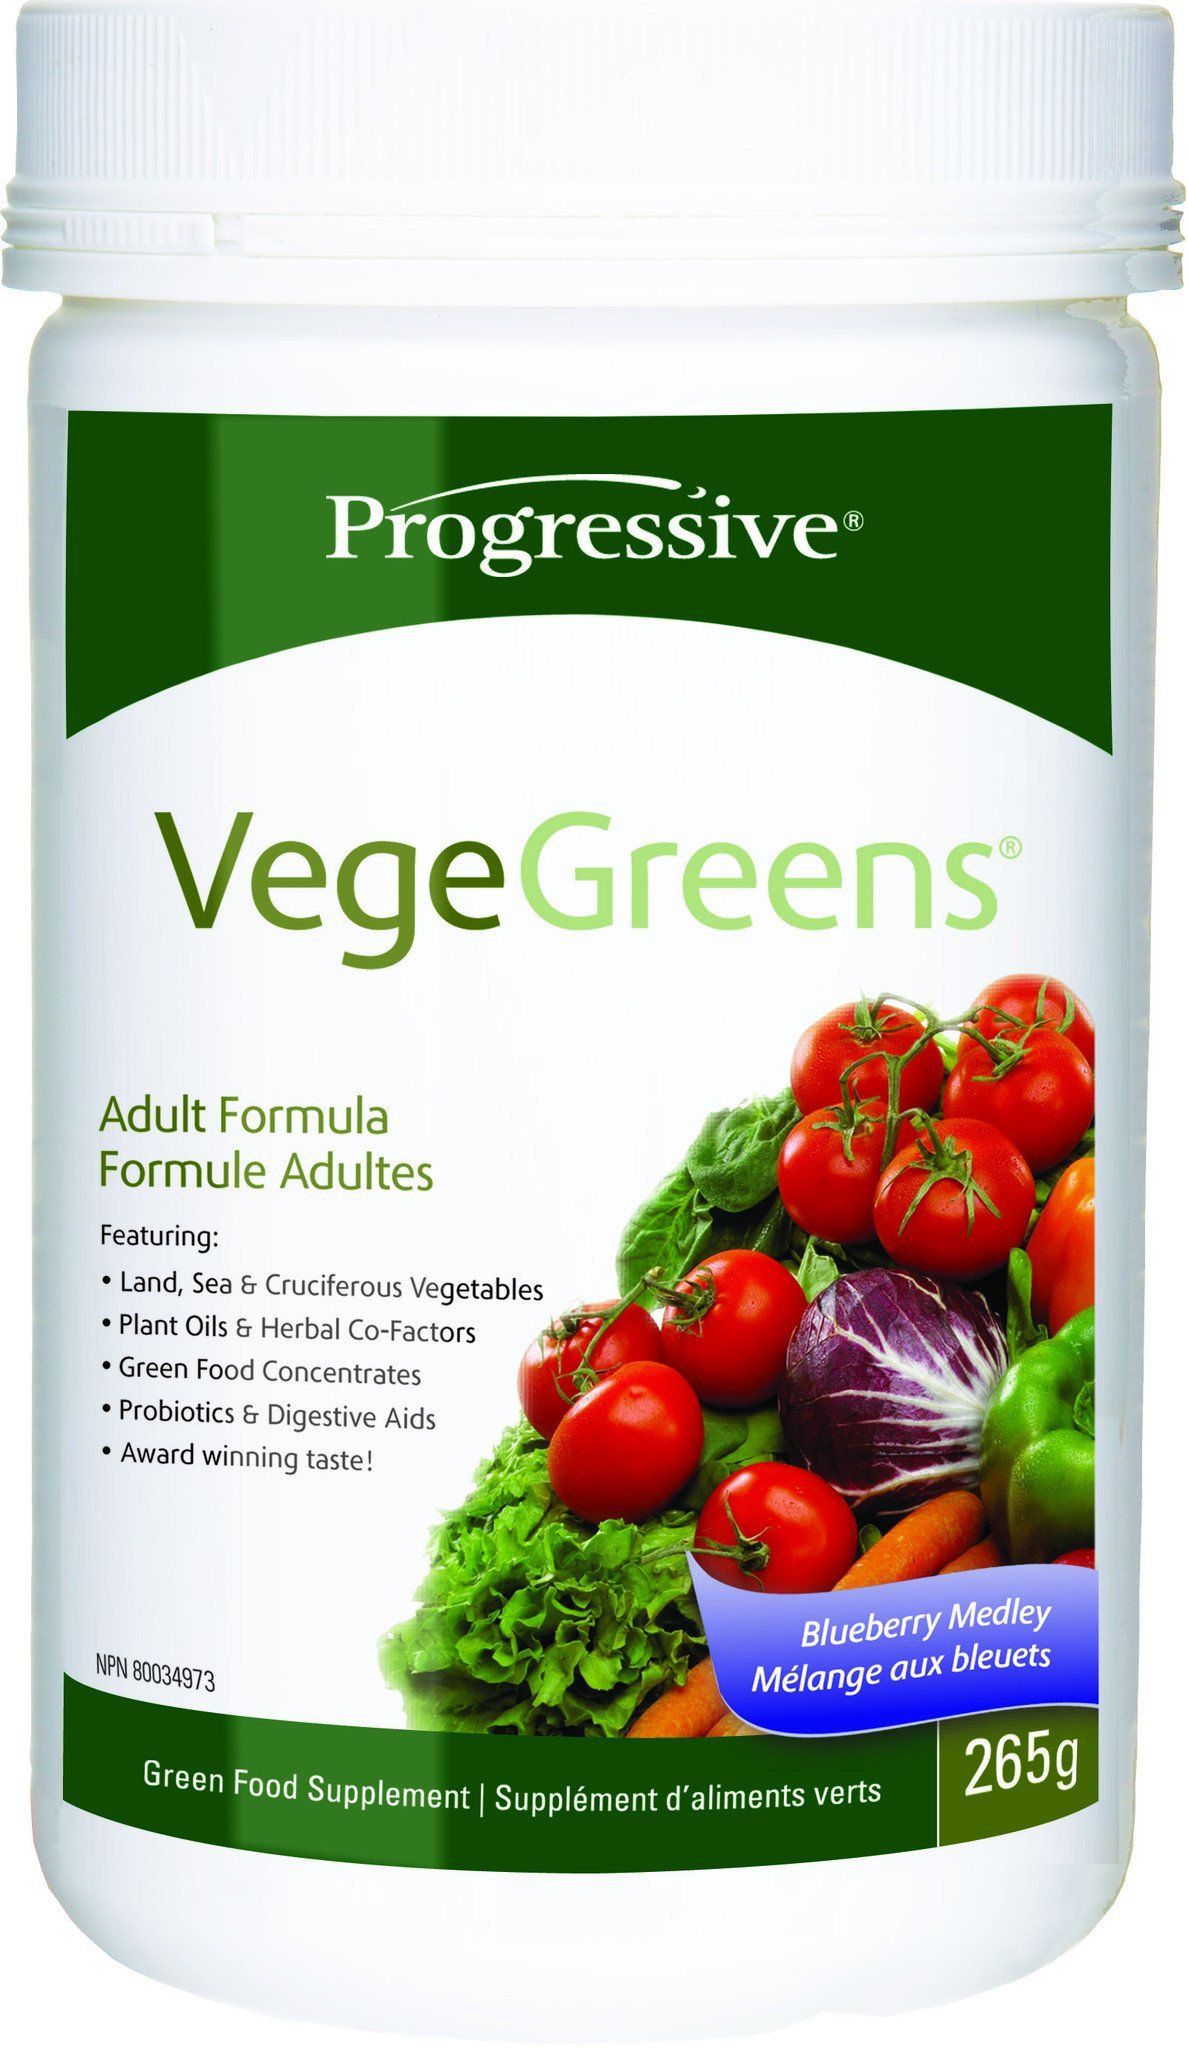 Supplements & Vitamins - Progressive - Blueberry VegeGreens, 265g